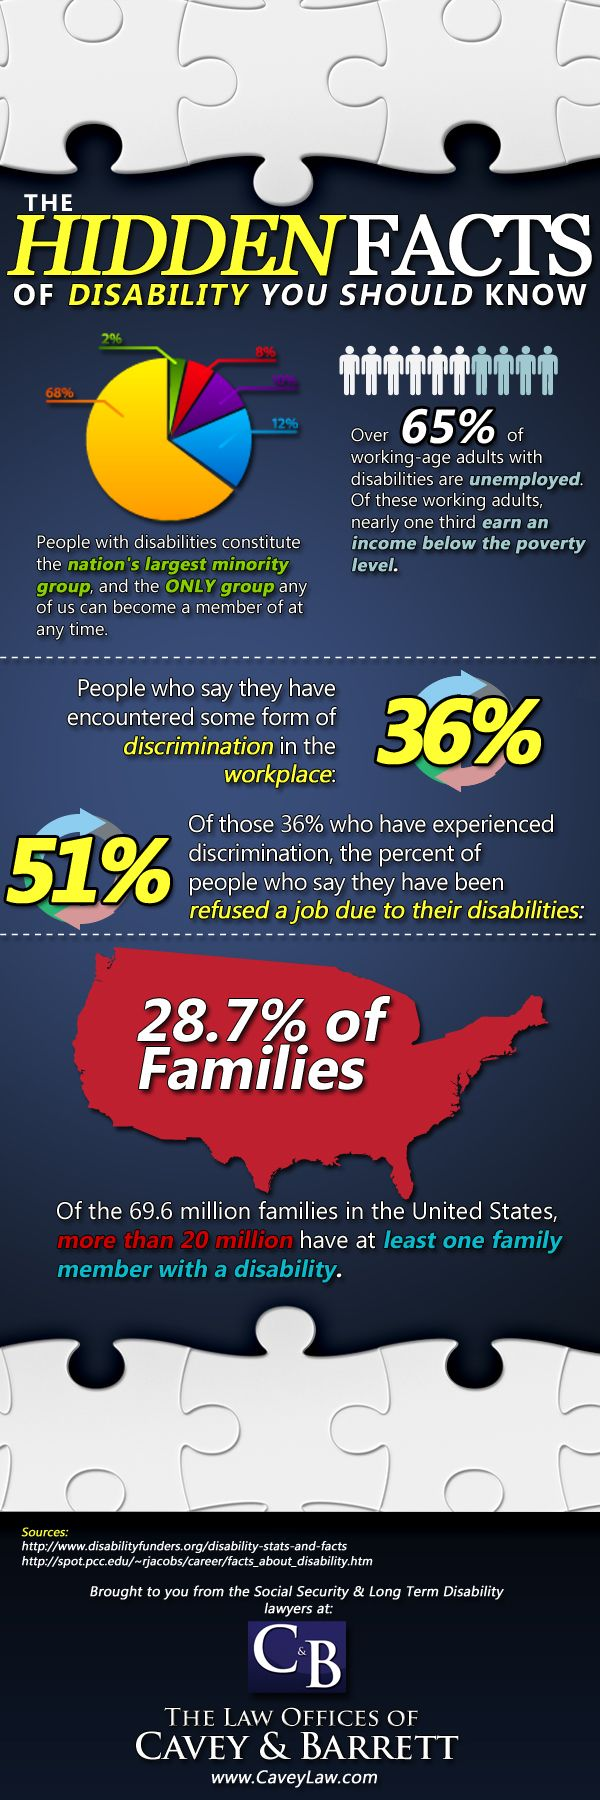 Hidden Facts of Disability Infographic. Notice that this is made by a law firm, which affects the rhetorical situation. Courtesy of http://www.caveylaw.com/the-hidden-facts-of-disability-infographic/